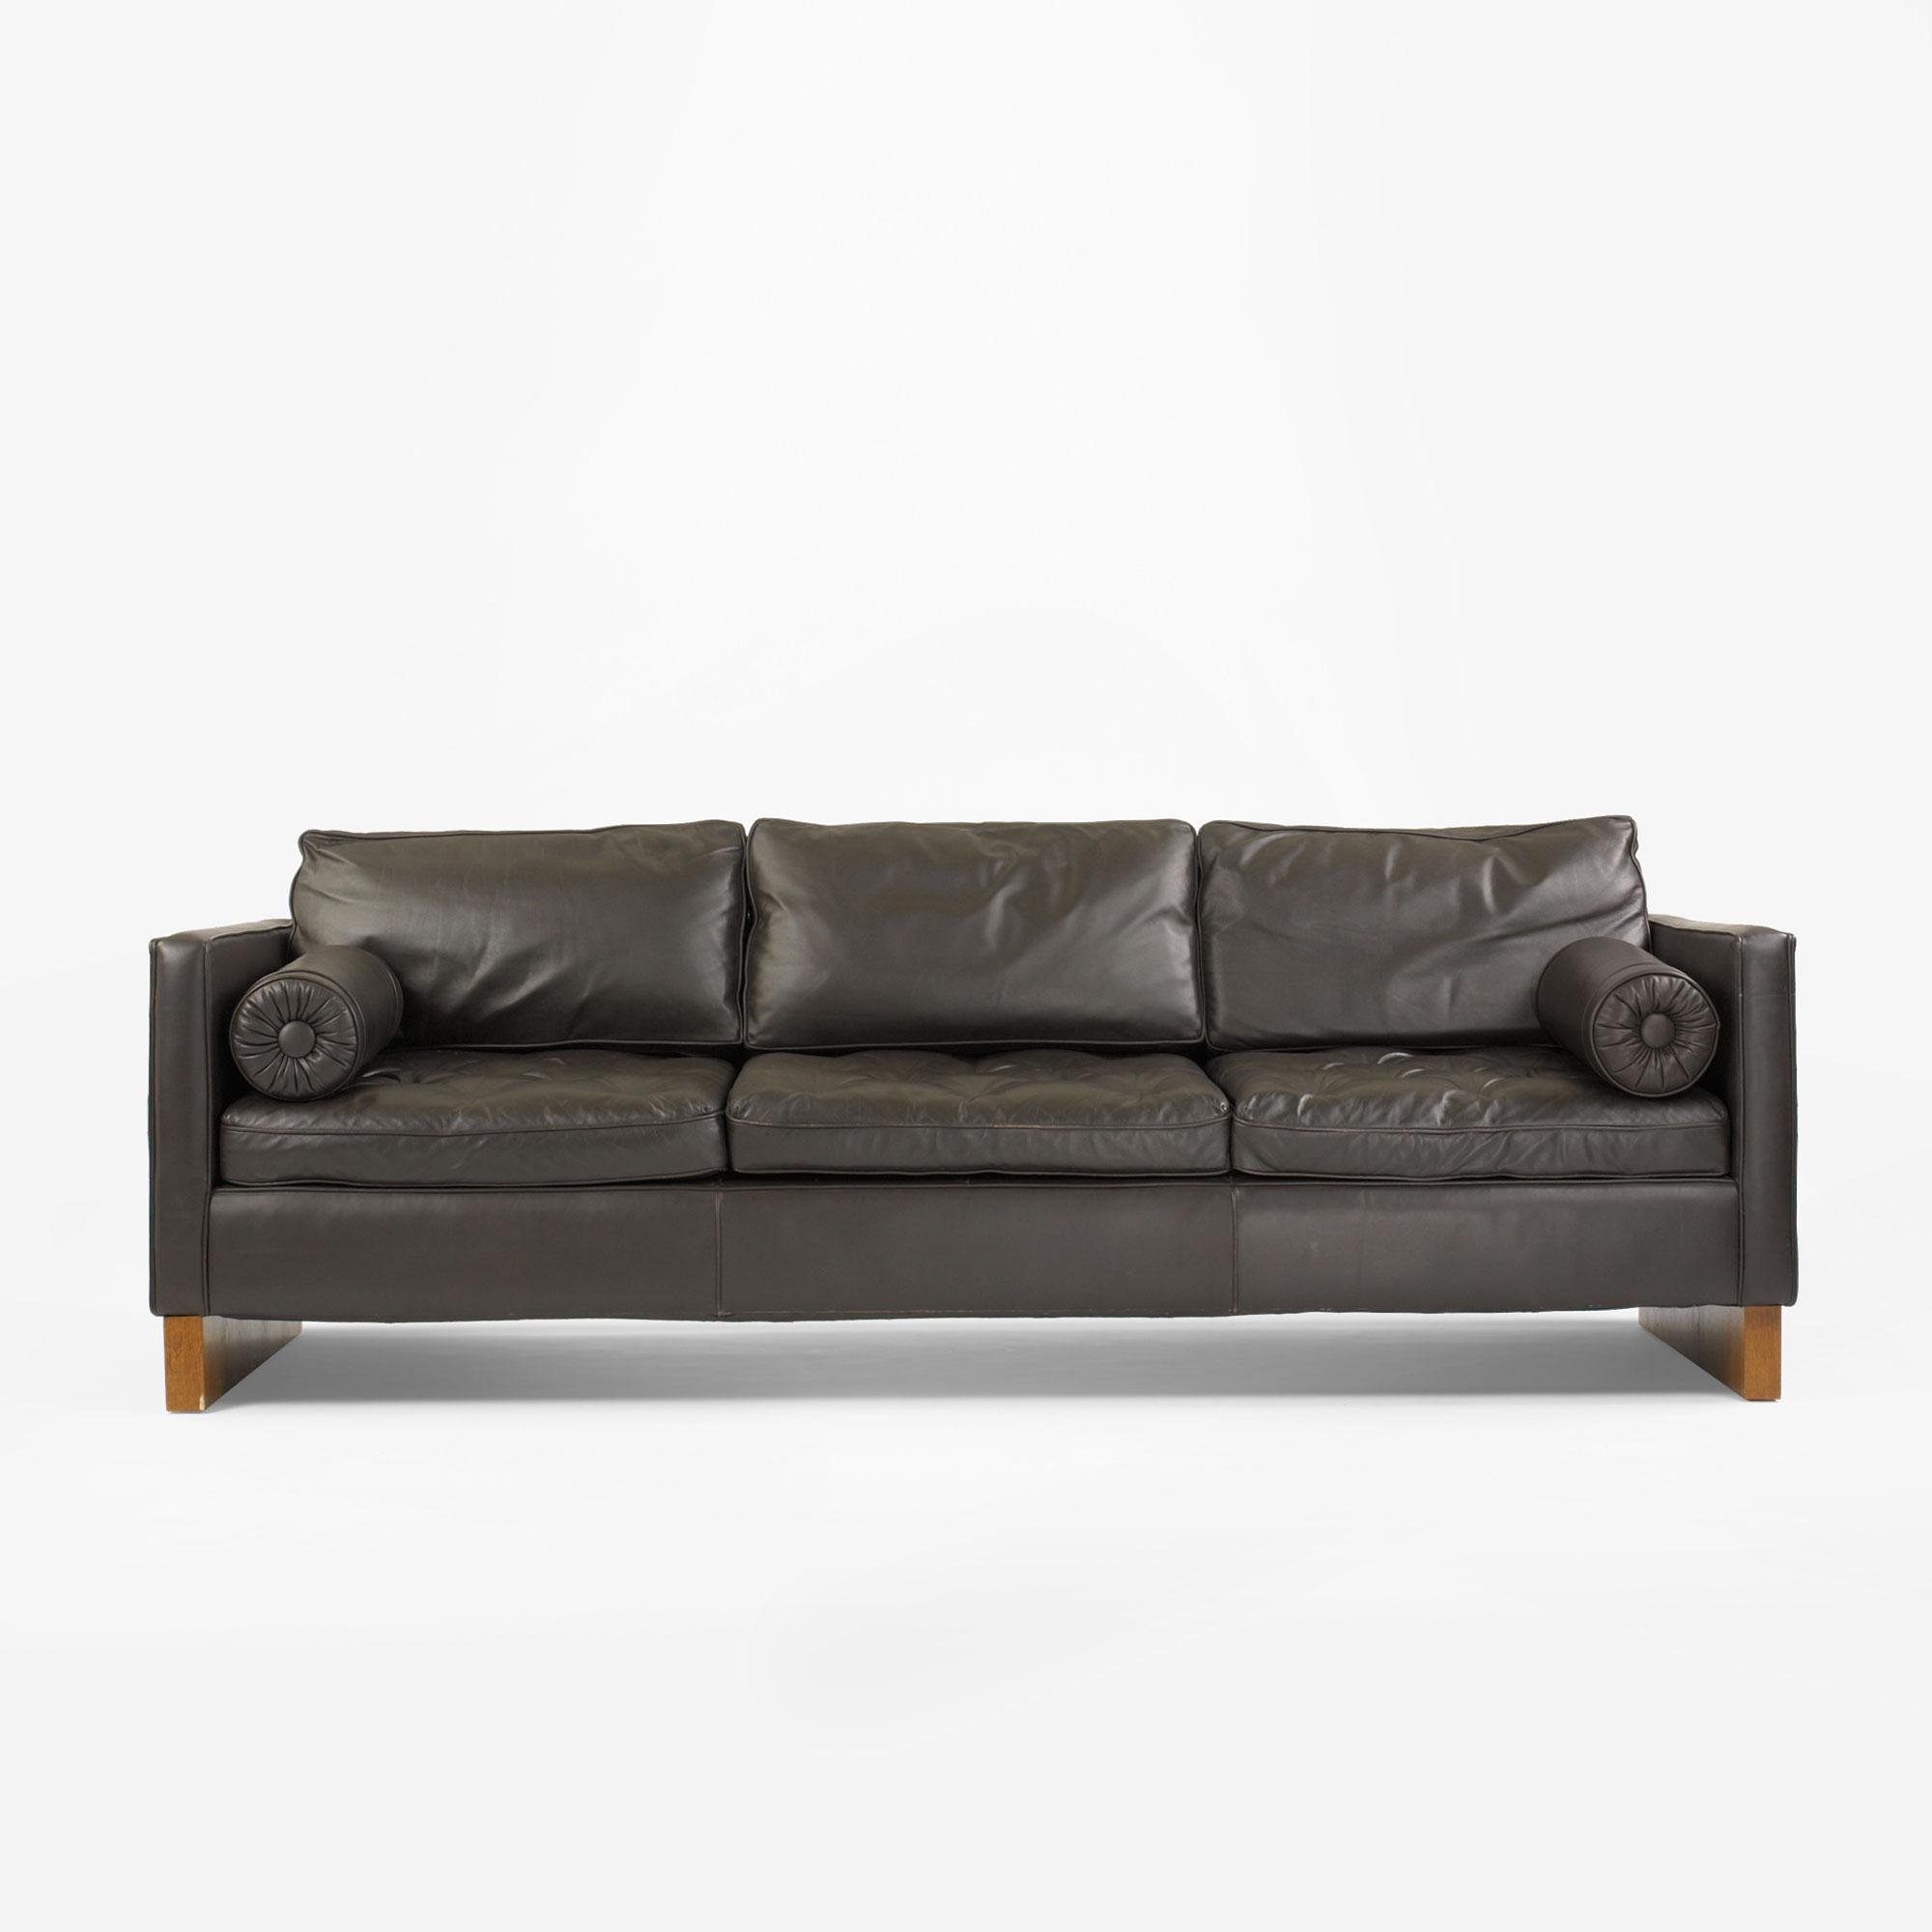 mies van der rohe sofa krefeld sofa hivemodern thesofa. Black Bedroom Furniture Sets. Home Design Ideas